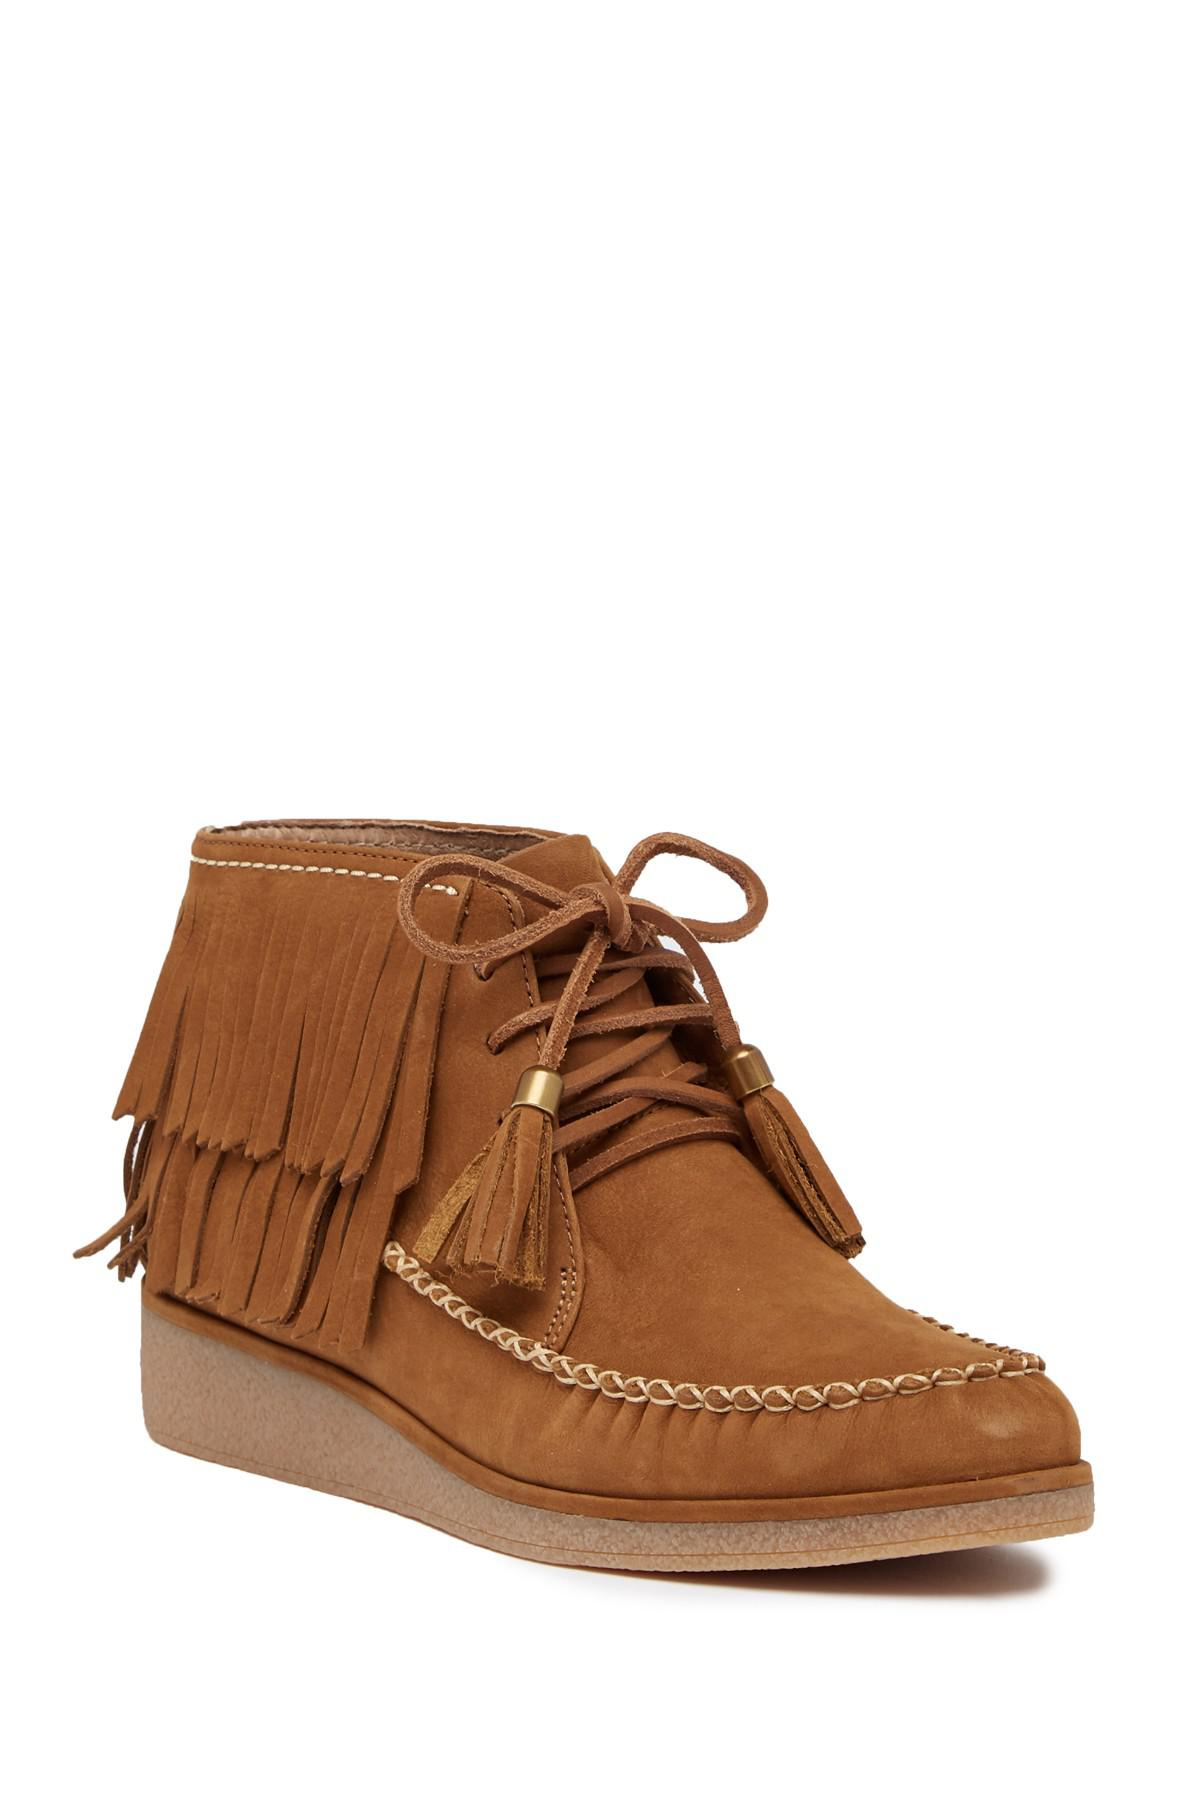 26d89fdb862 Lyst - UGG Caleb Leather Wedge Bootie in Brown